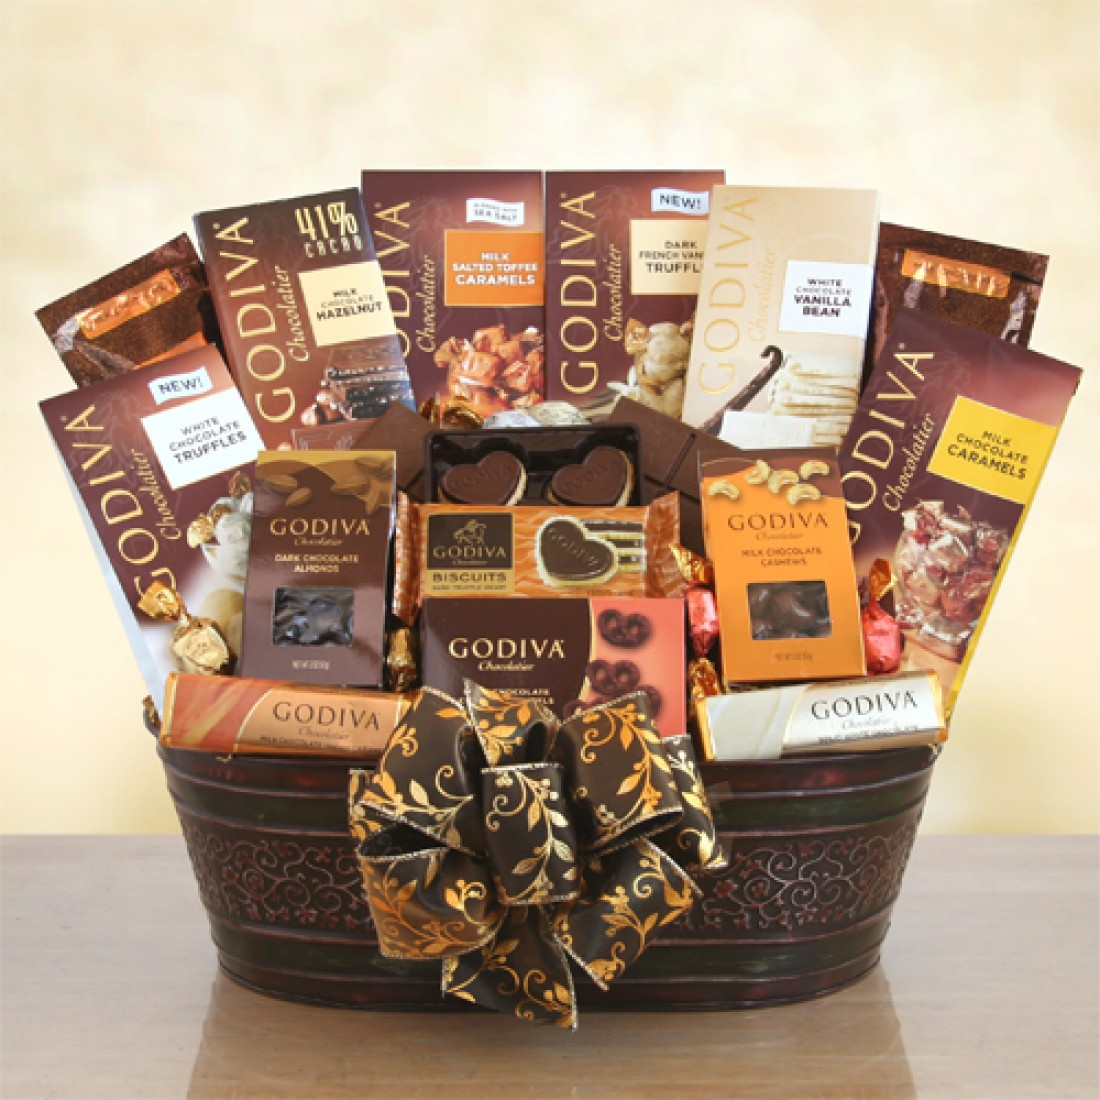 Chocolate Gift Baskets: Godiva Gourmet Chocolate Gift Baskets